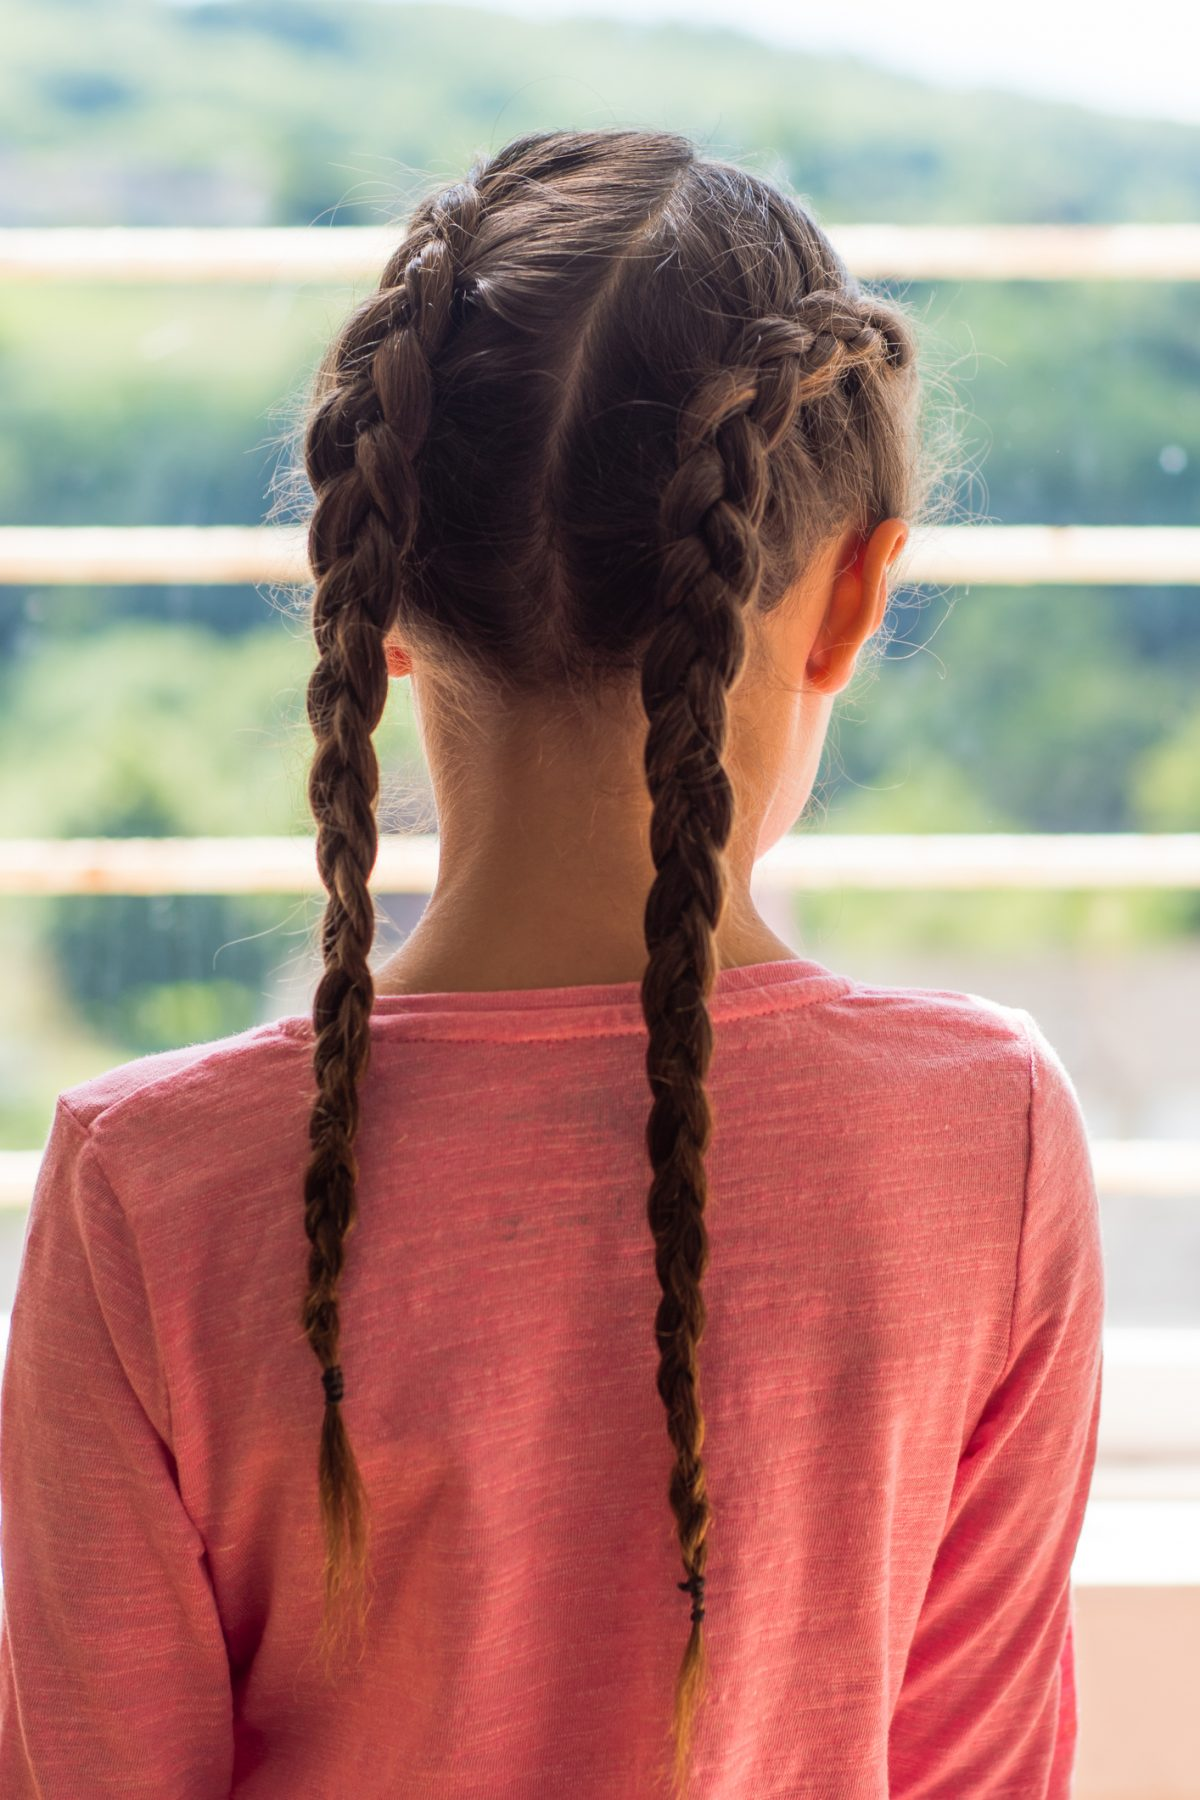 Young girl with two Dutch braids